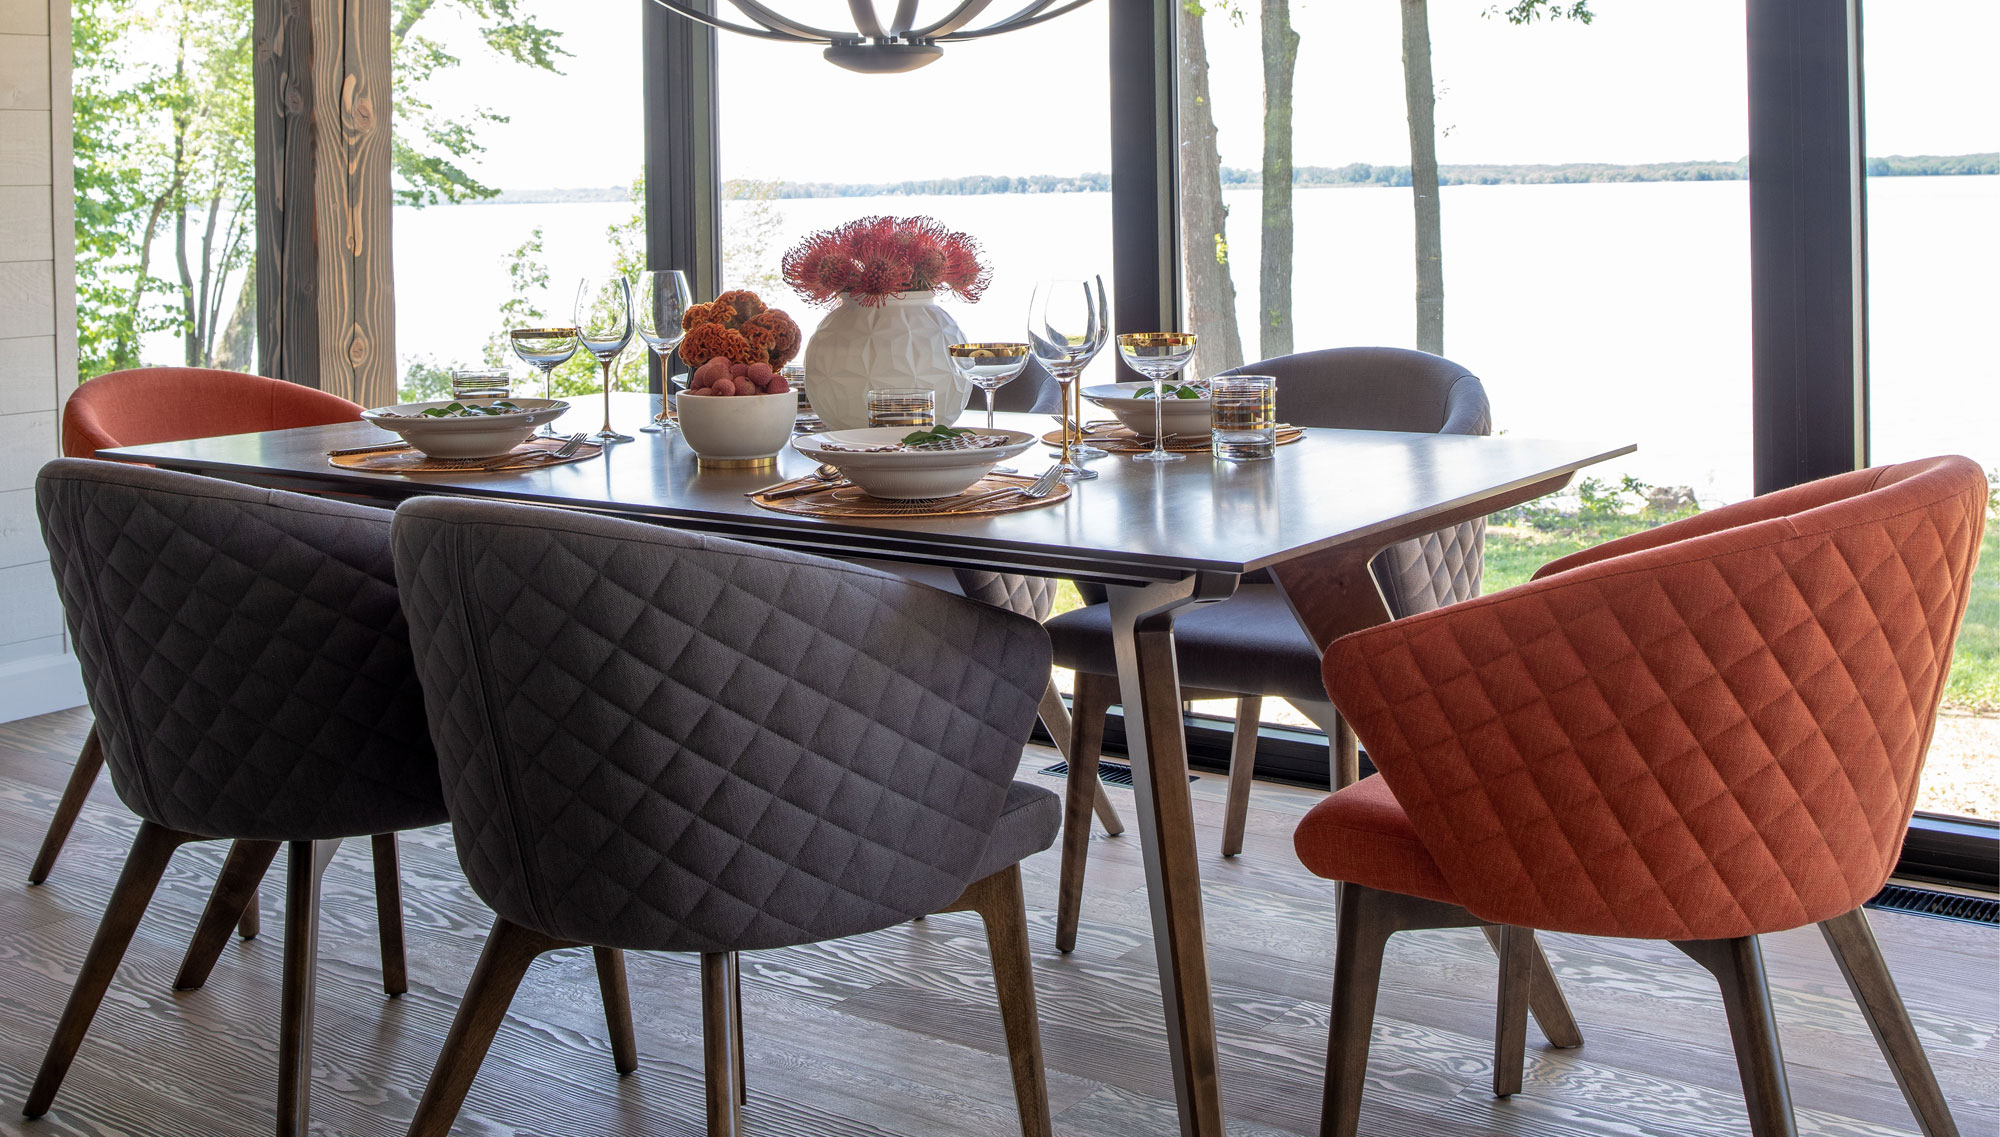 Preferred Handcrafted In North America – Kitchen And Dining Room – Canadel With Regard To Transitional 4 Seating Square Casual Dining Tables (View 16 of 25)